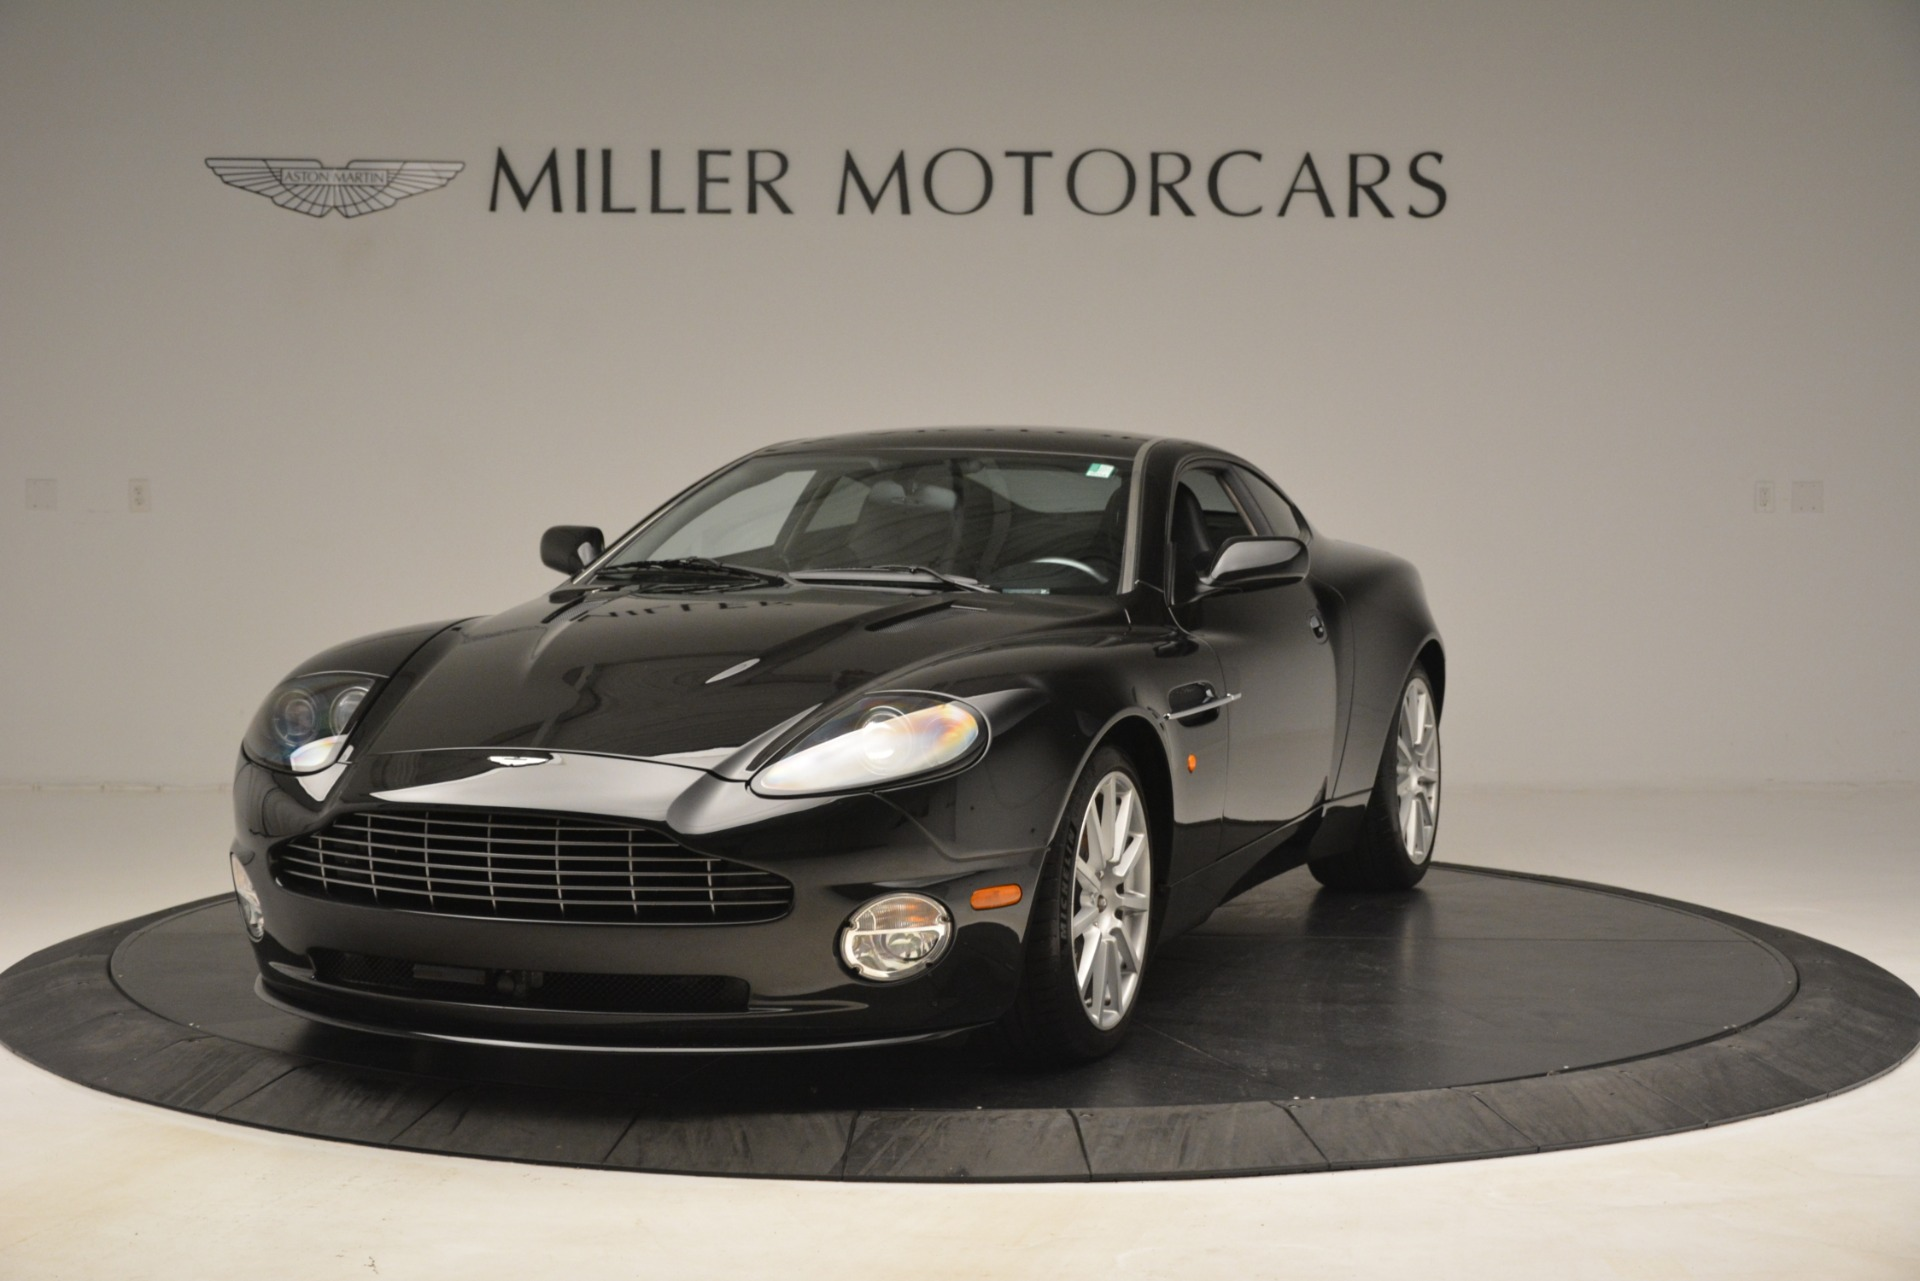 Used 2005 Aston Martin V12 Vanquish S Coupe For Sale In Greenwich, CT 3218_p2